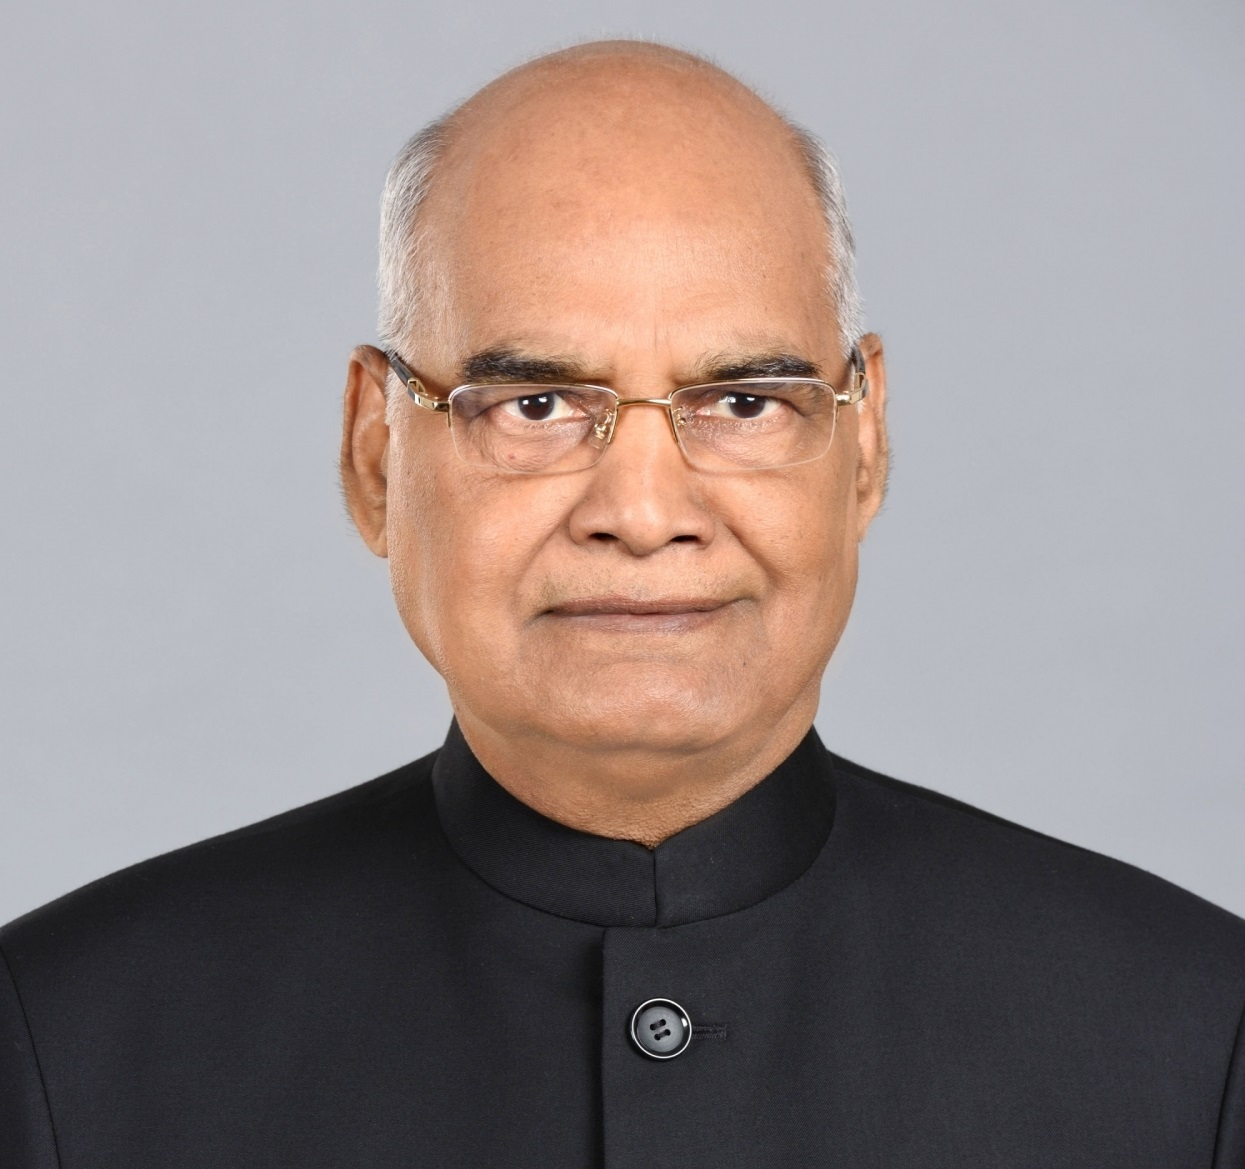 Rapist, Rape, Gang Rape, Sexual Offence, Ram Nath Kovind, Death Penalty, Hang till death, President of India, Indian President, National news